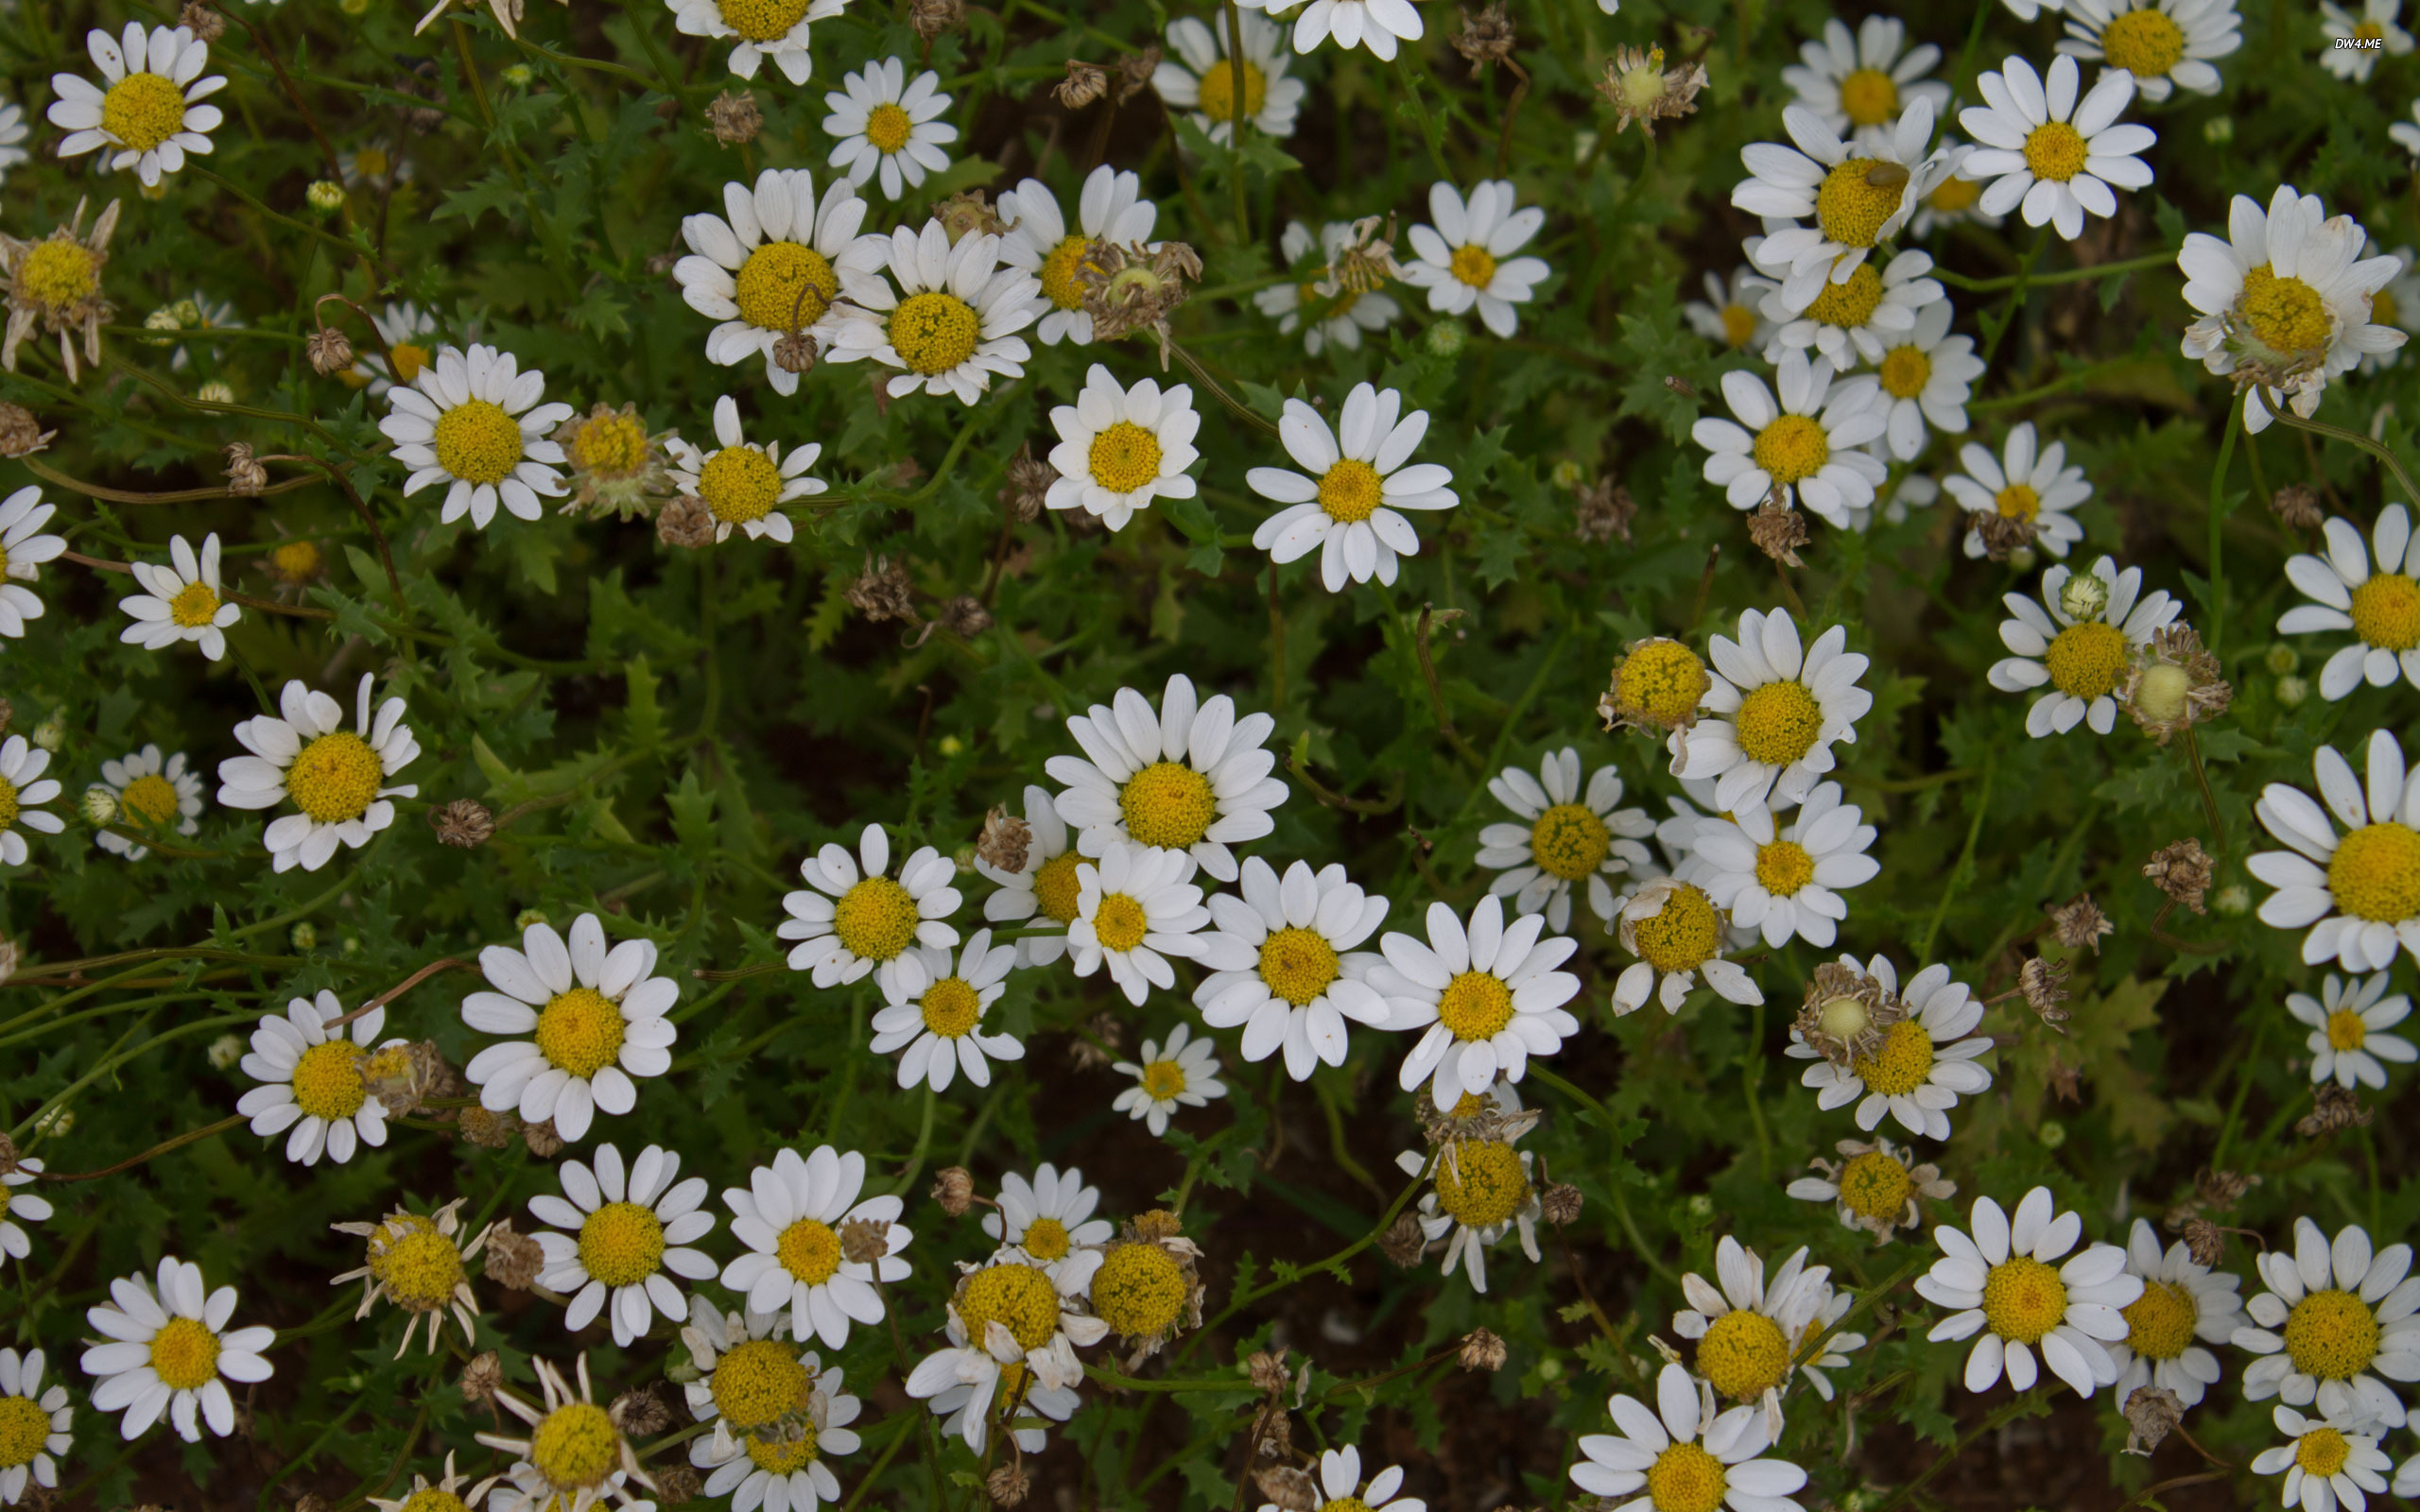 oxeye daisies amazing flower mobile background wallpaper